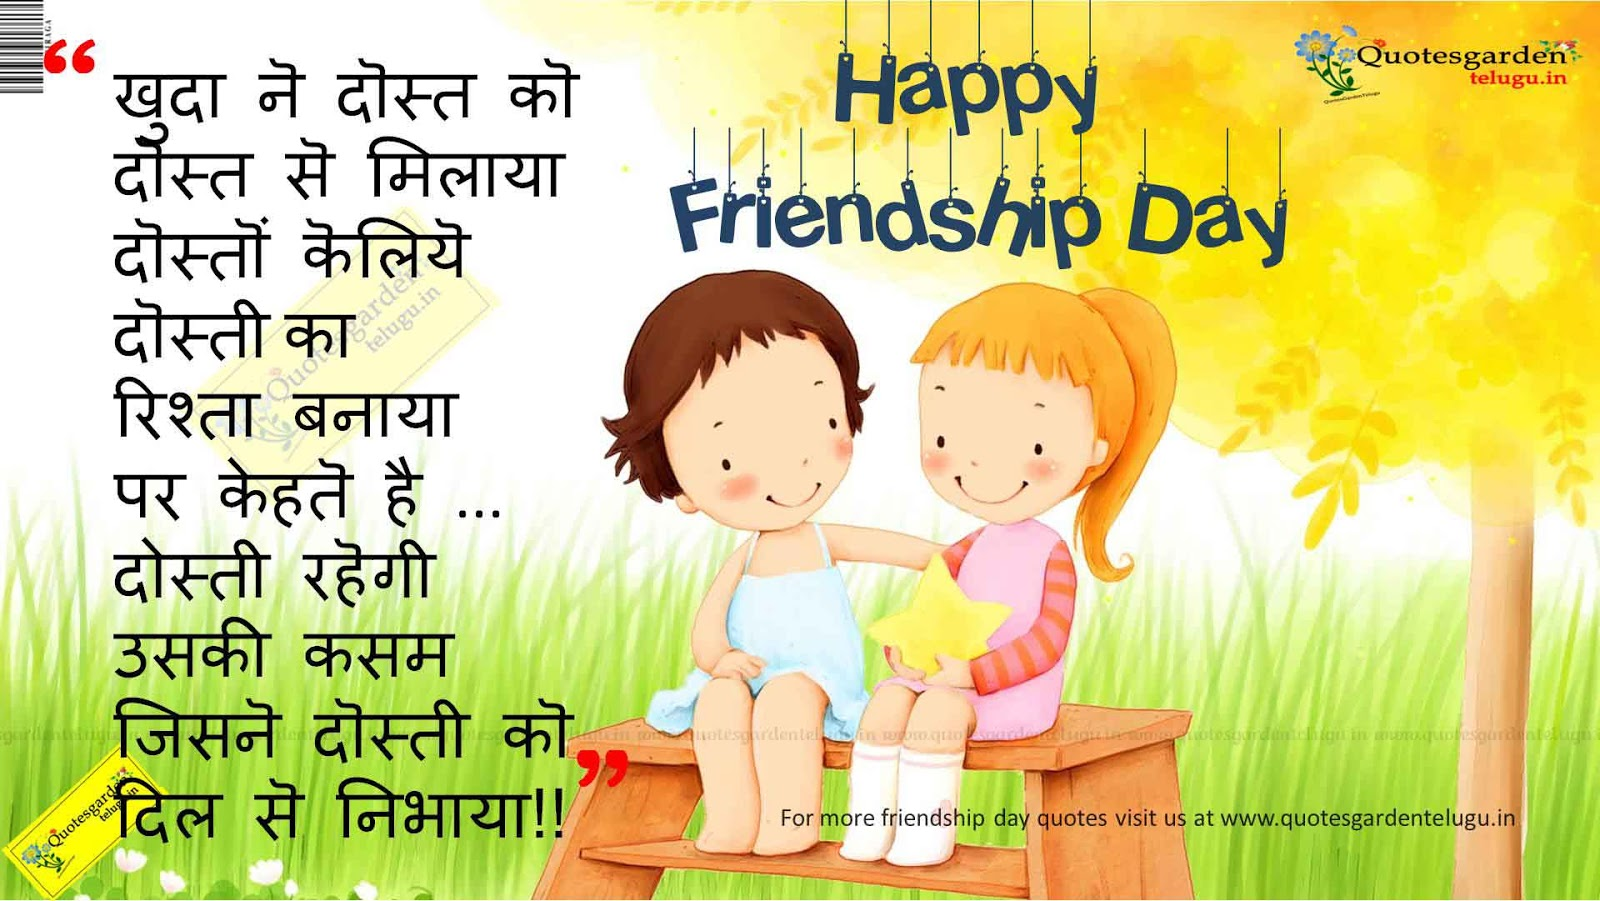 Friendship Day Quotes Greetings Images Wallpapers In Hindi